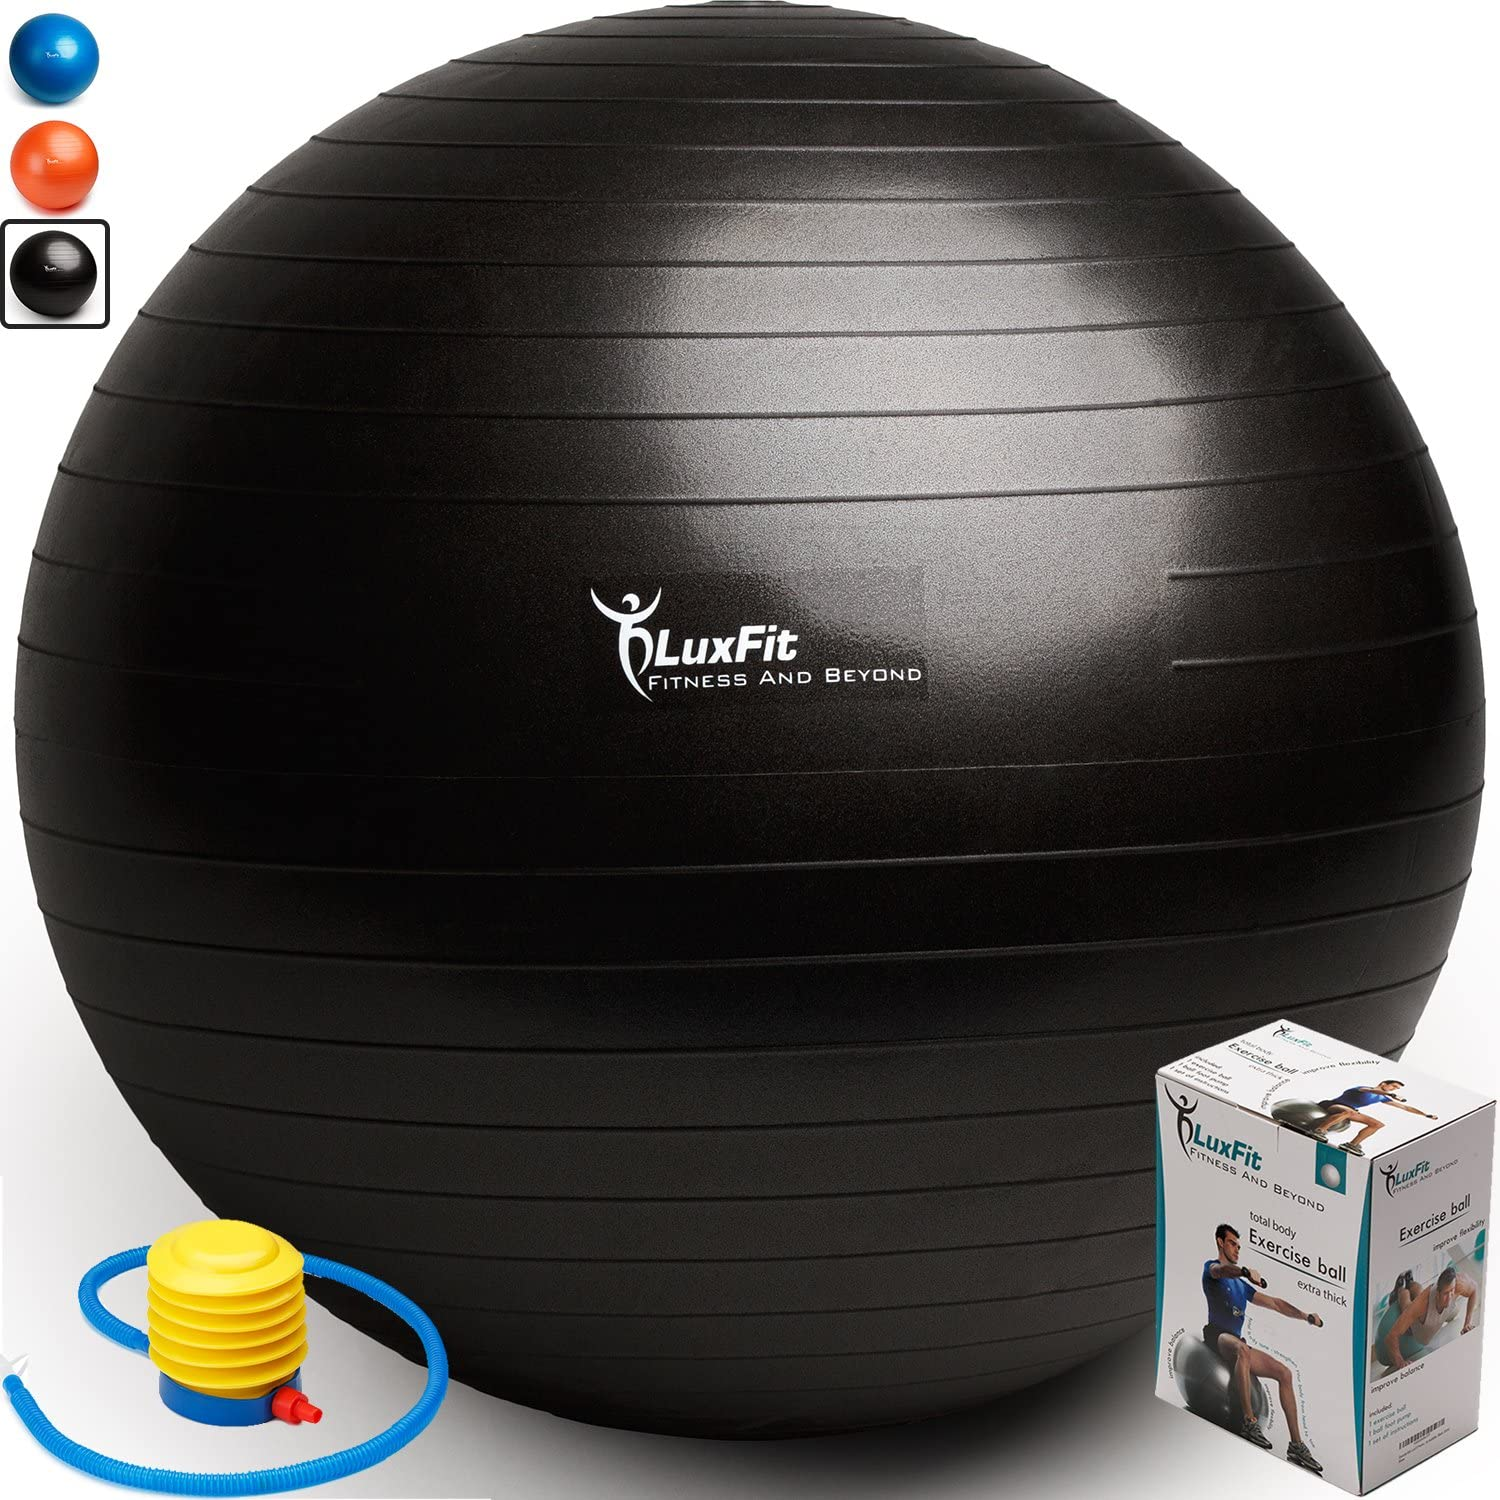 LuxFit Exercise Ball, Premium Extra Thick Yoga Ball 2 Year Warranty - Swiss Ball Includes Foot Pump. Anti-Burst - Slip Resistant! 45cm, 55cm, 65cm, 75cm, 85cm Size Fitness Balls